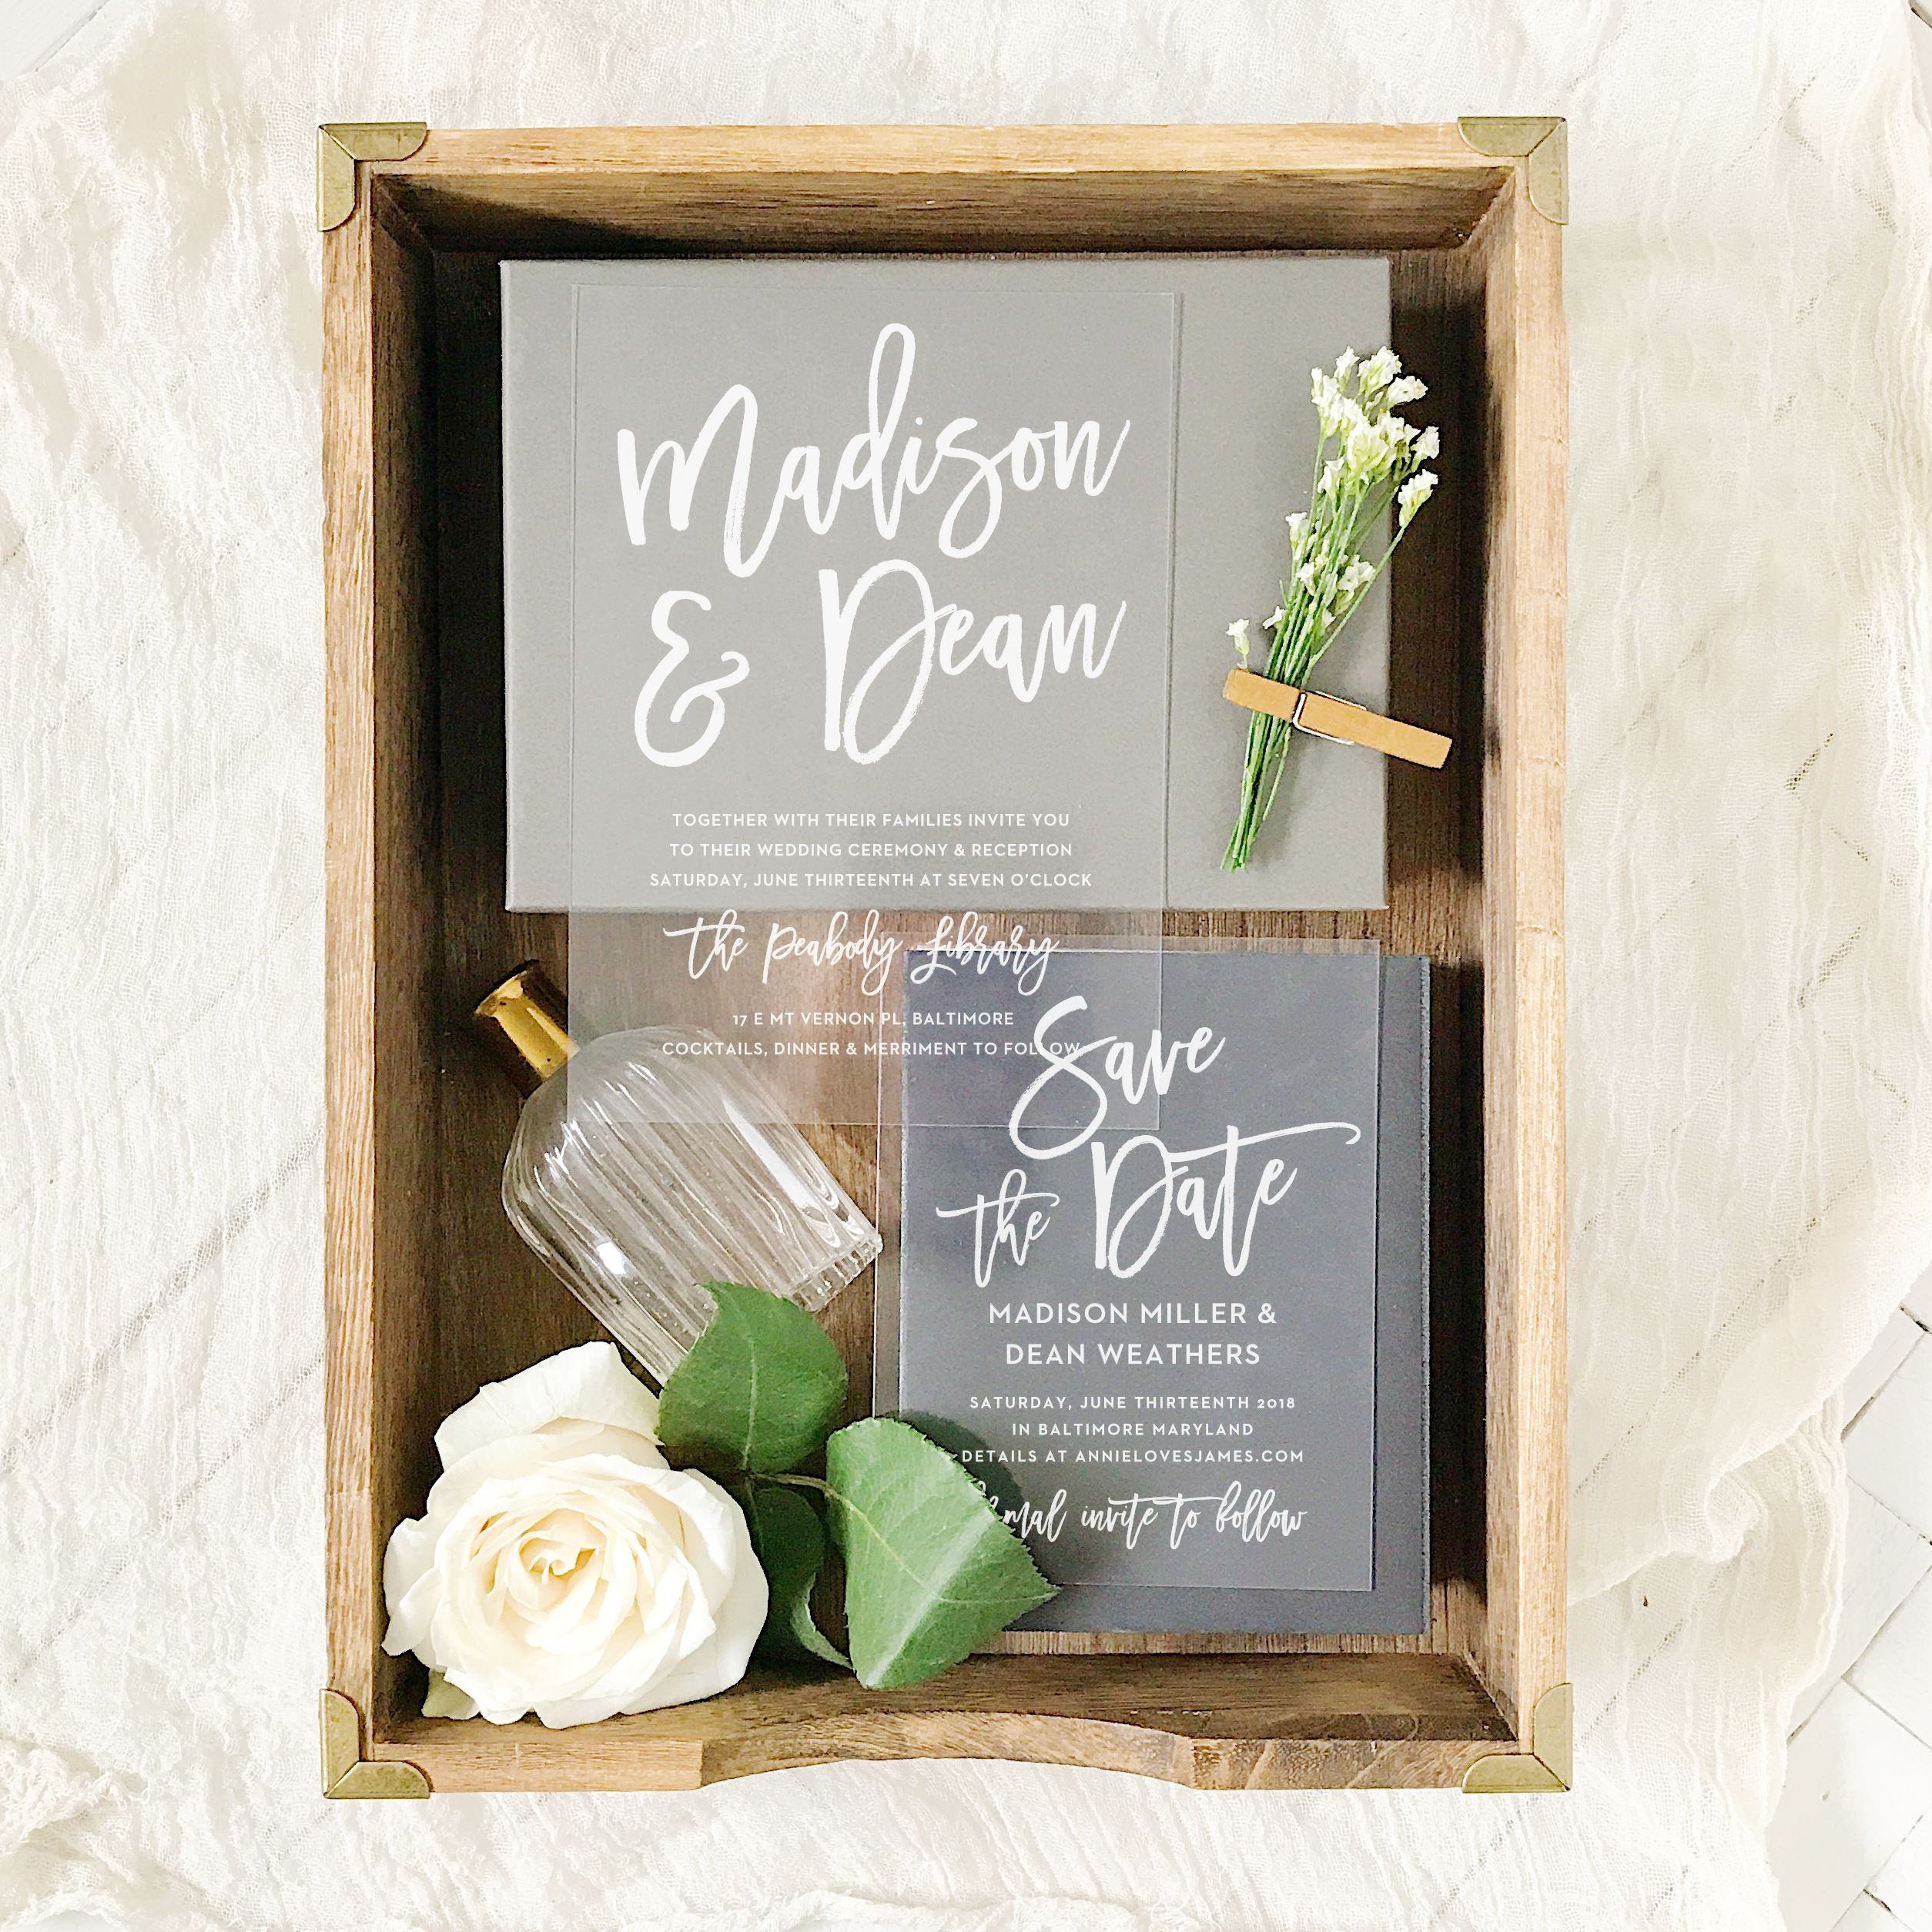 Marker Script Clear Wedding Invitations Wedding styles Weddings